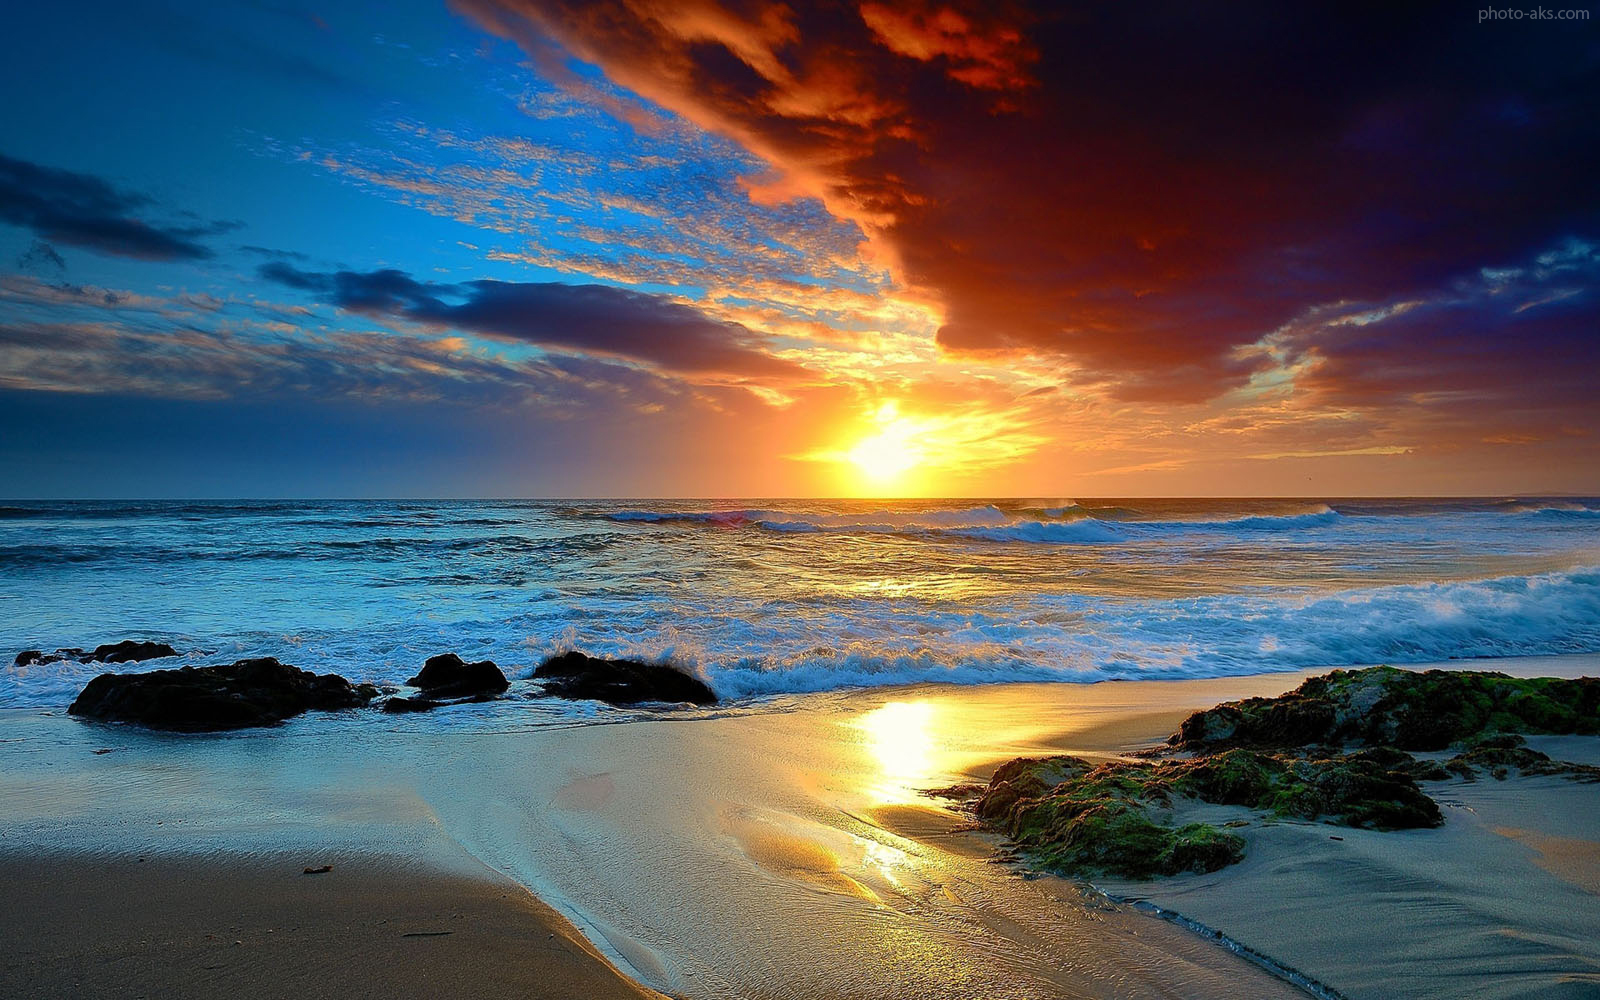 http://pic.photo-aks.com/photo/nature/sea-beach/large/beach_sea_photography.jpg